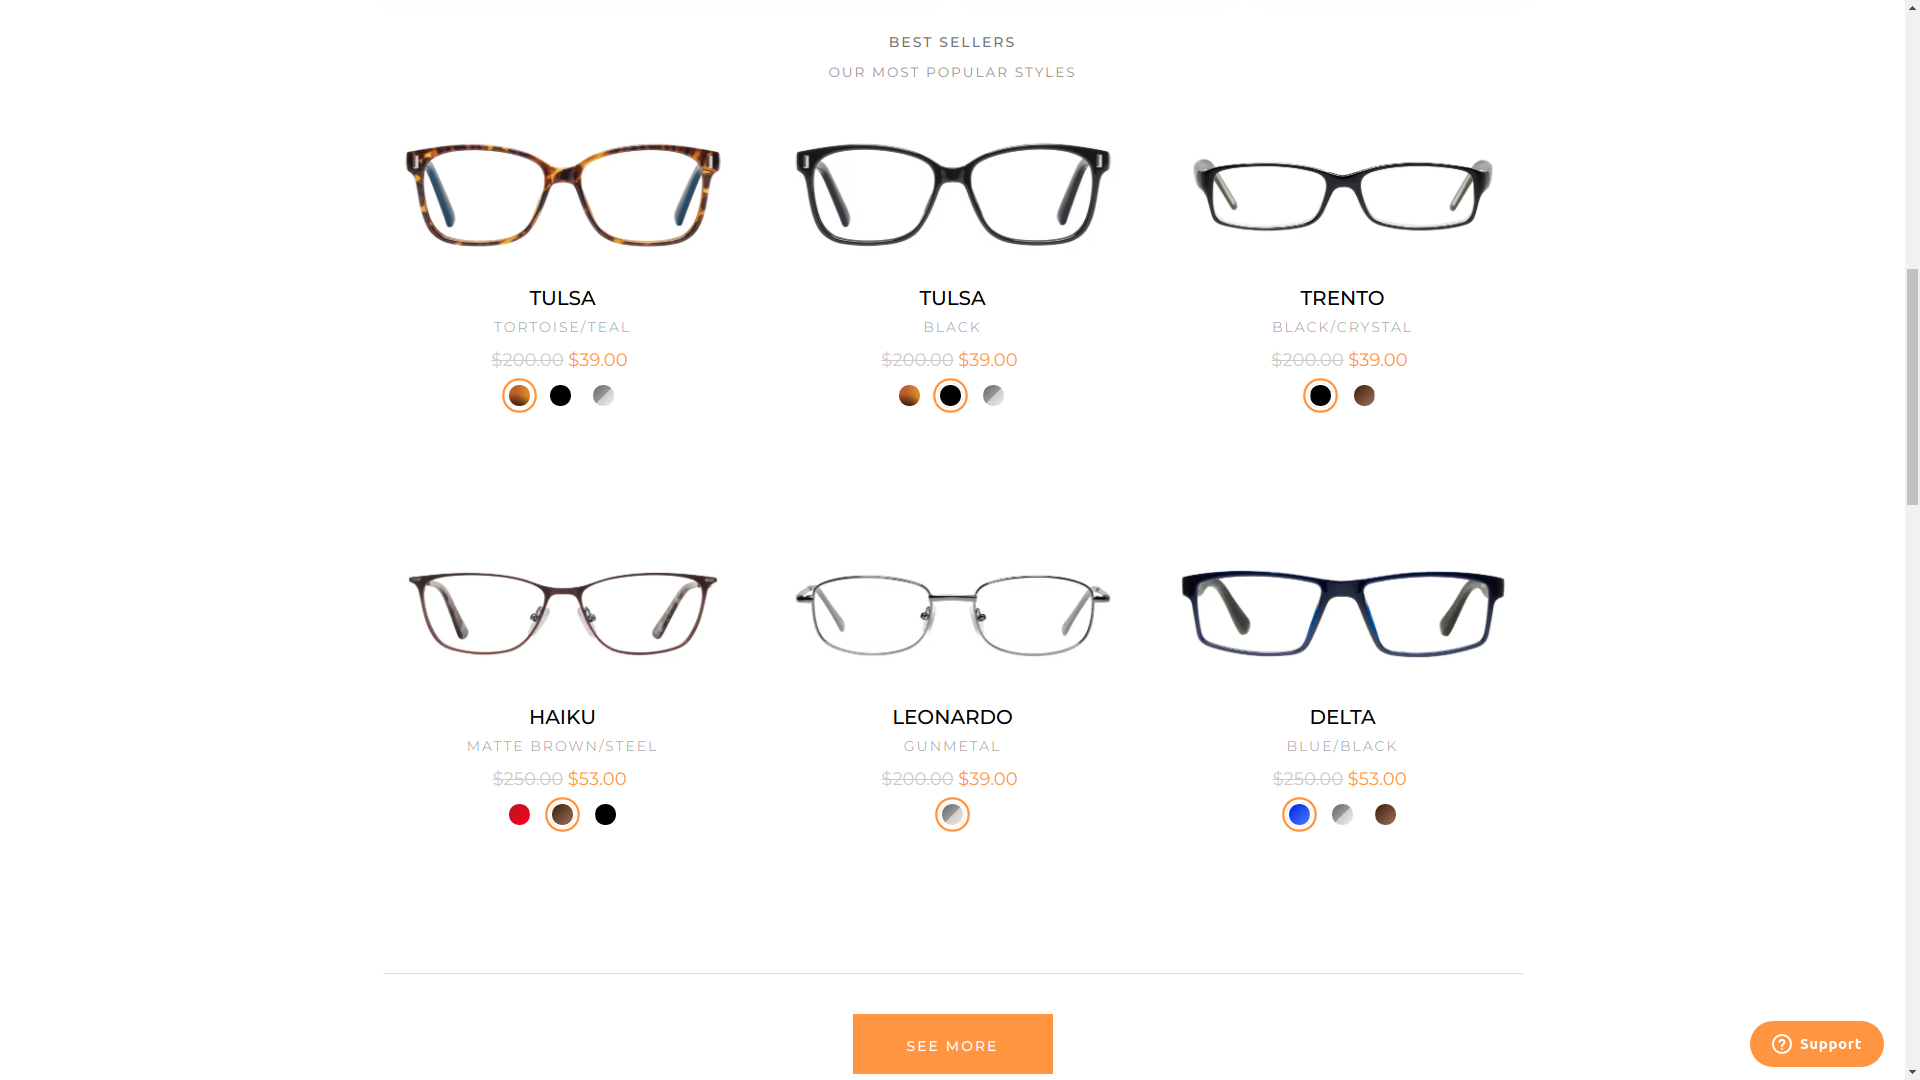 39DOLLARGLASSES: 39DollarGlasses.com is proud to be celebrating our 21st year online! PRESCRIPTION GLASSES STARTING AT $39.